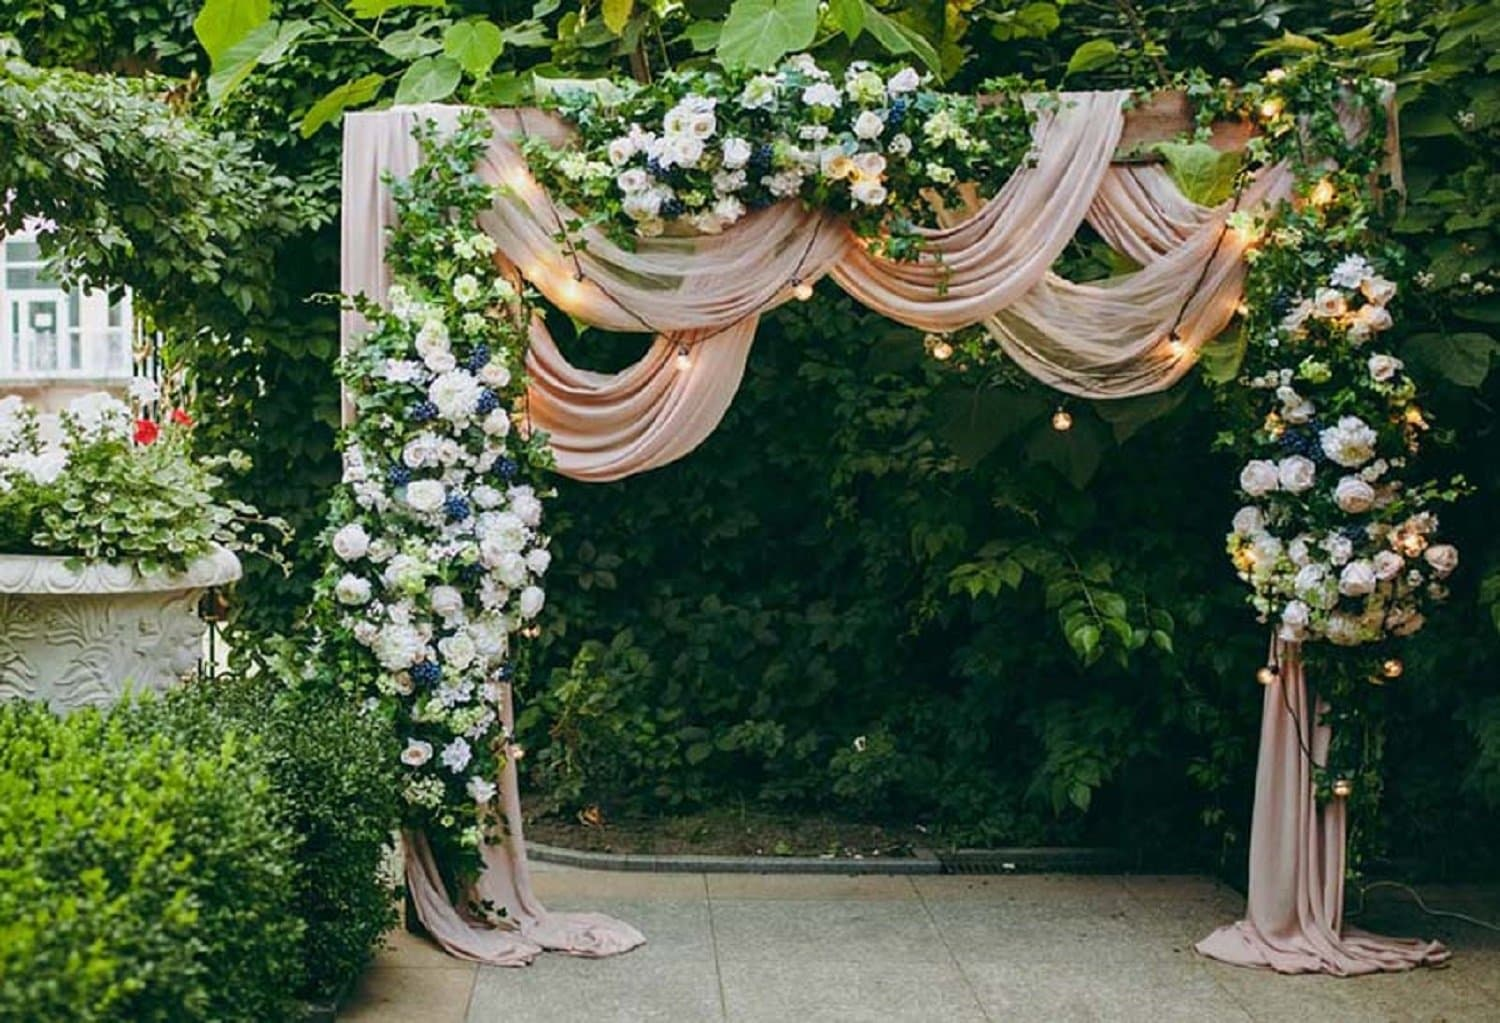 5 Steps To Create Your Own Wedding Diy Photo Booth Joshua Wyborn